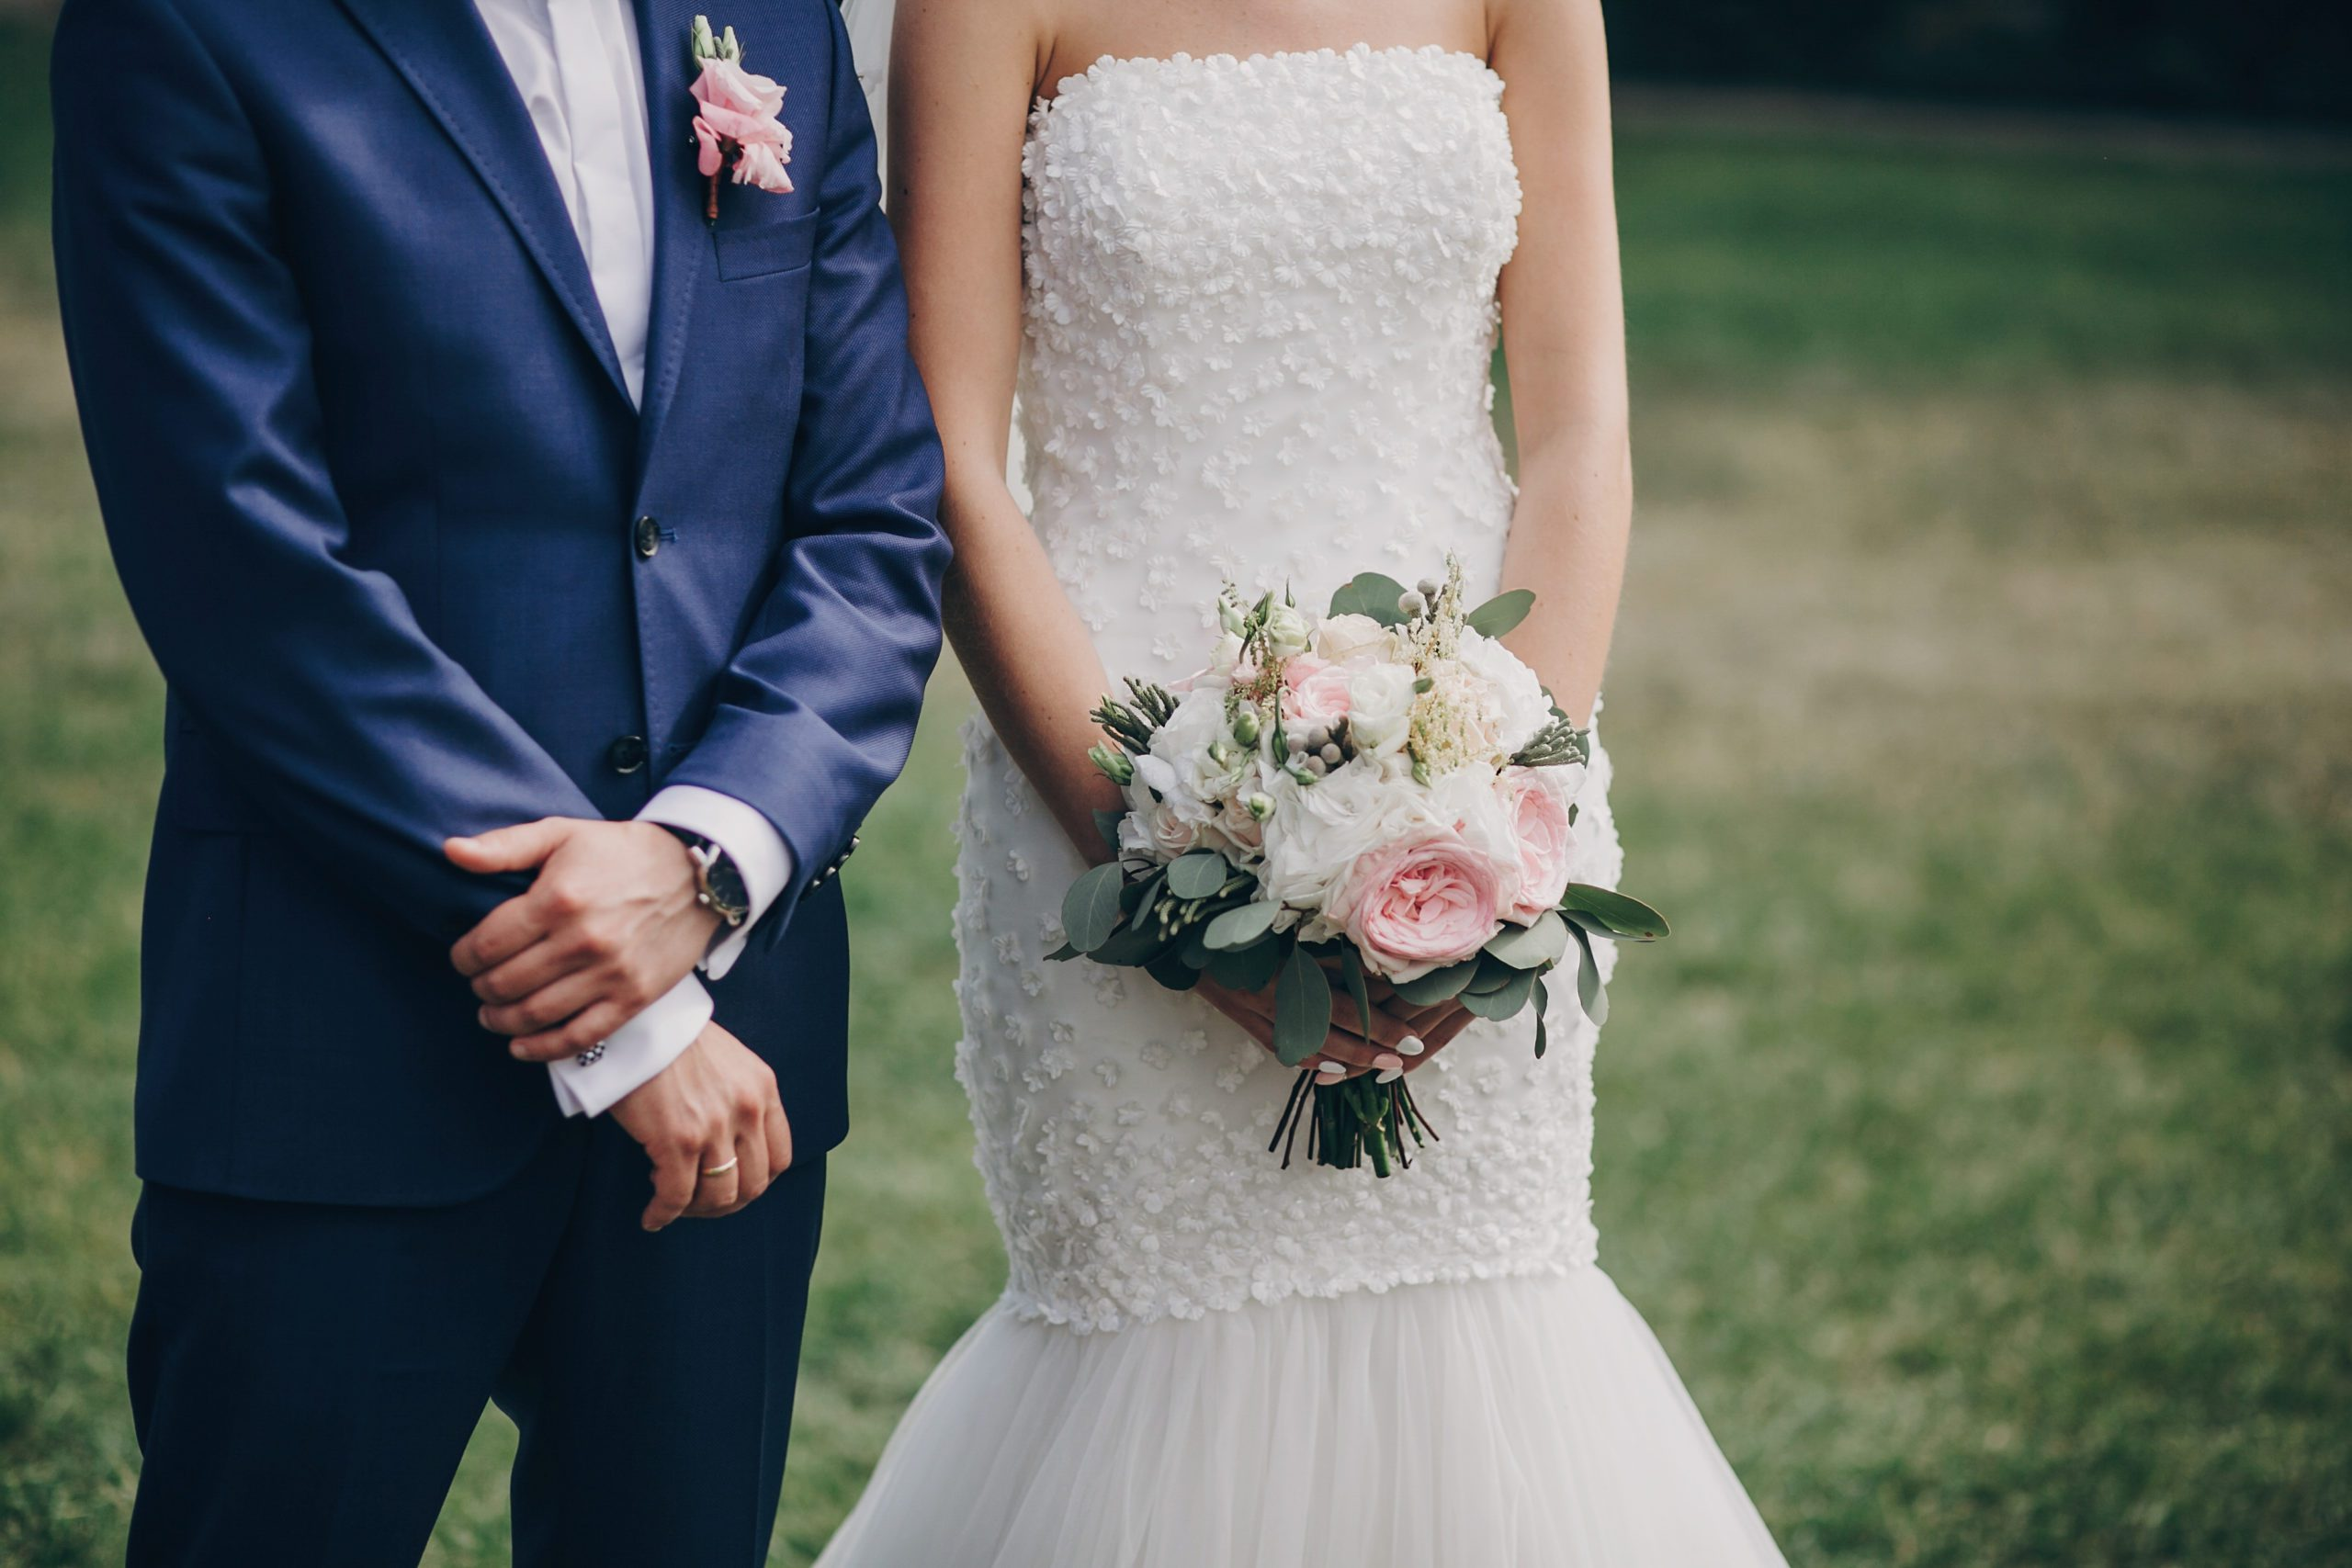 Stylish bride with bouquet and groom standing in wedding aisle with rose petals on grass during matrimony, cropped view . Beautiful wedding ceremony in summer park or garden